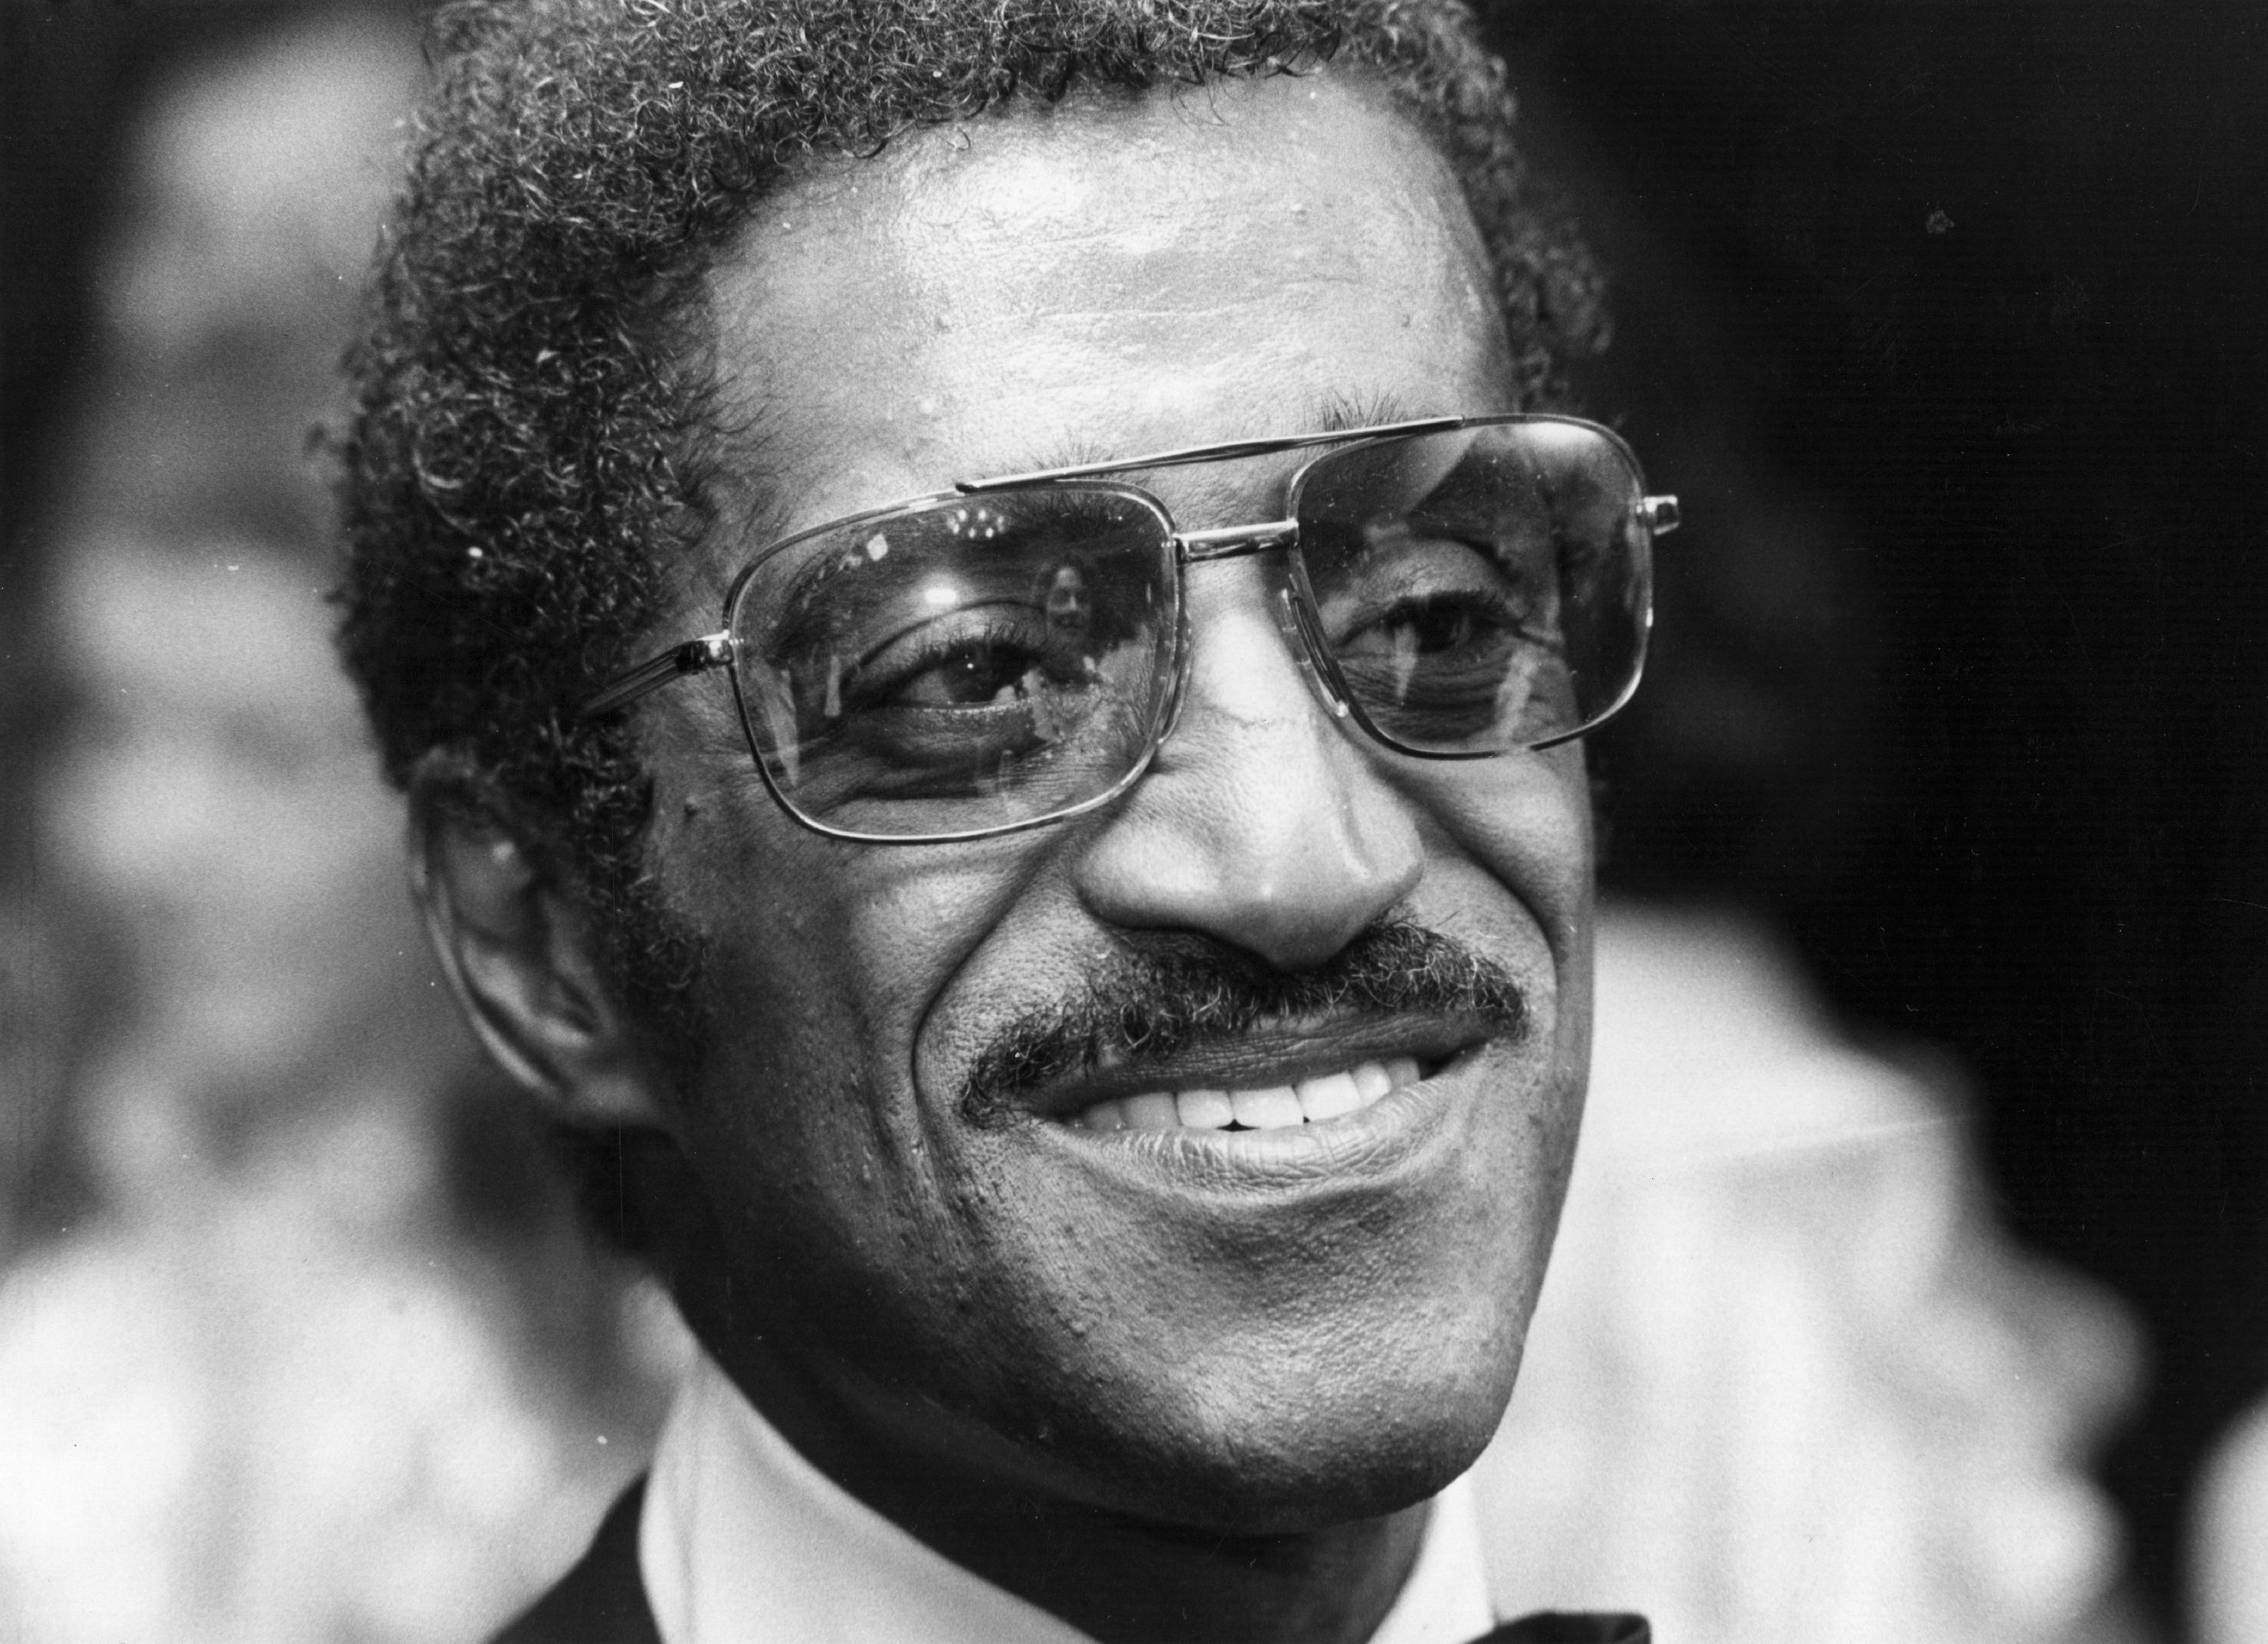 18th July 1974: Sammy Davis Jnr (1925 - 1990), American actor and popular singer. (Photo by Michael Fresco/Evening Standard/Getty Images)